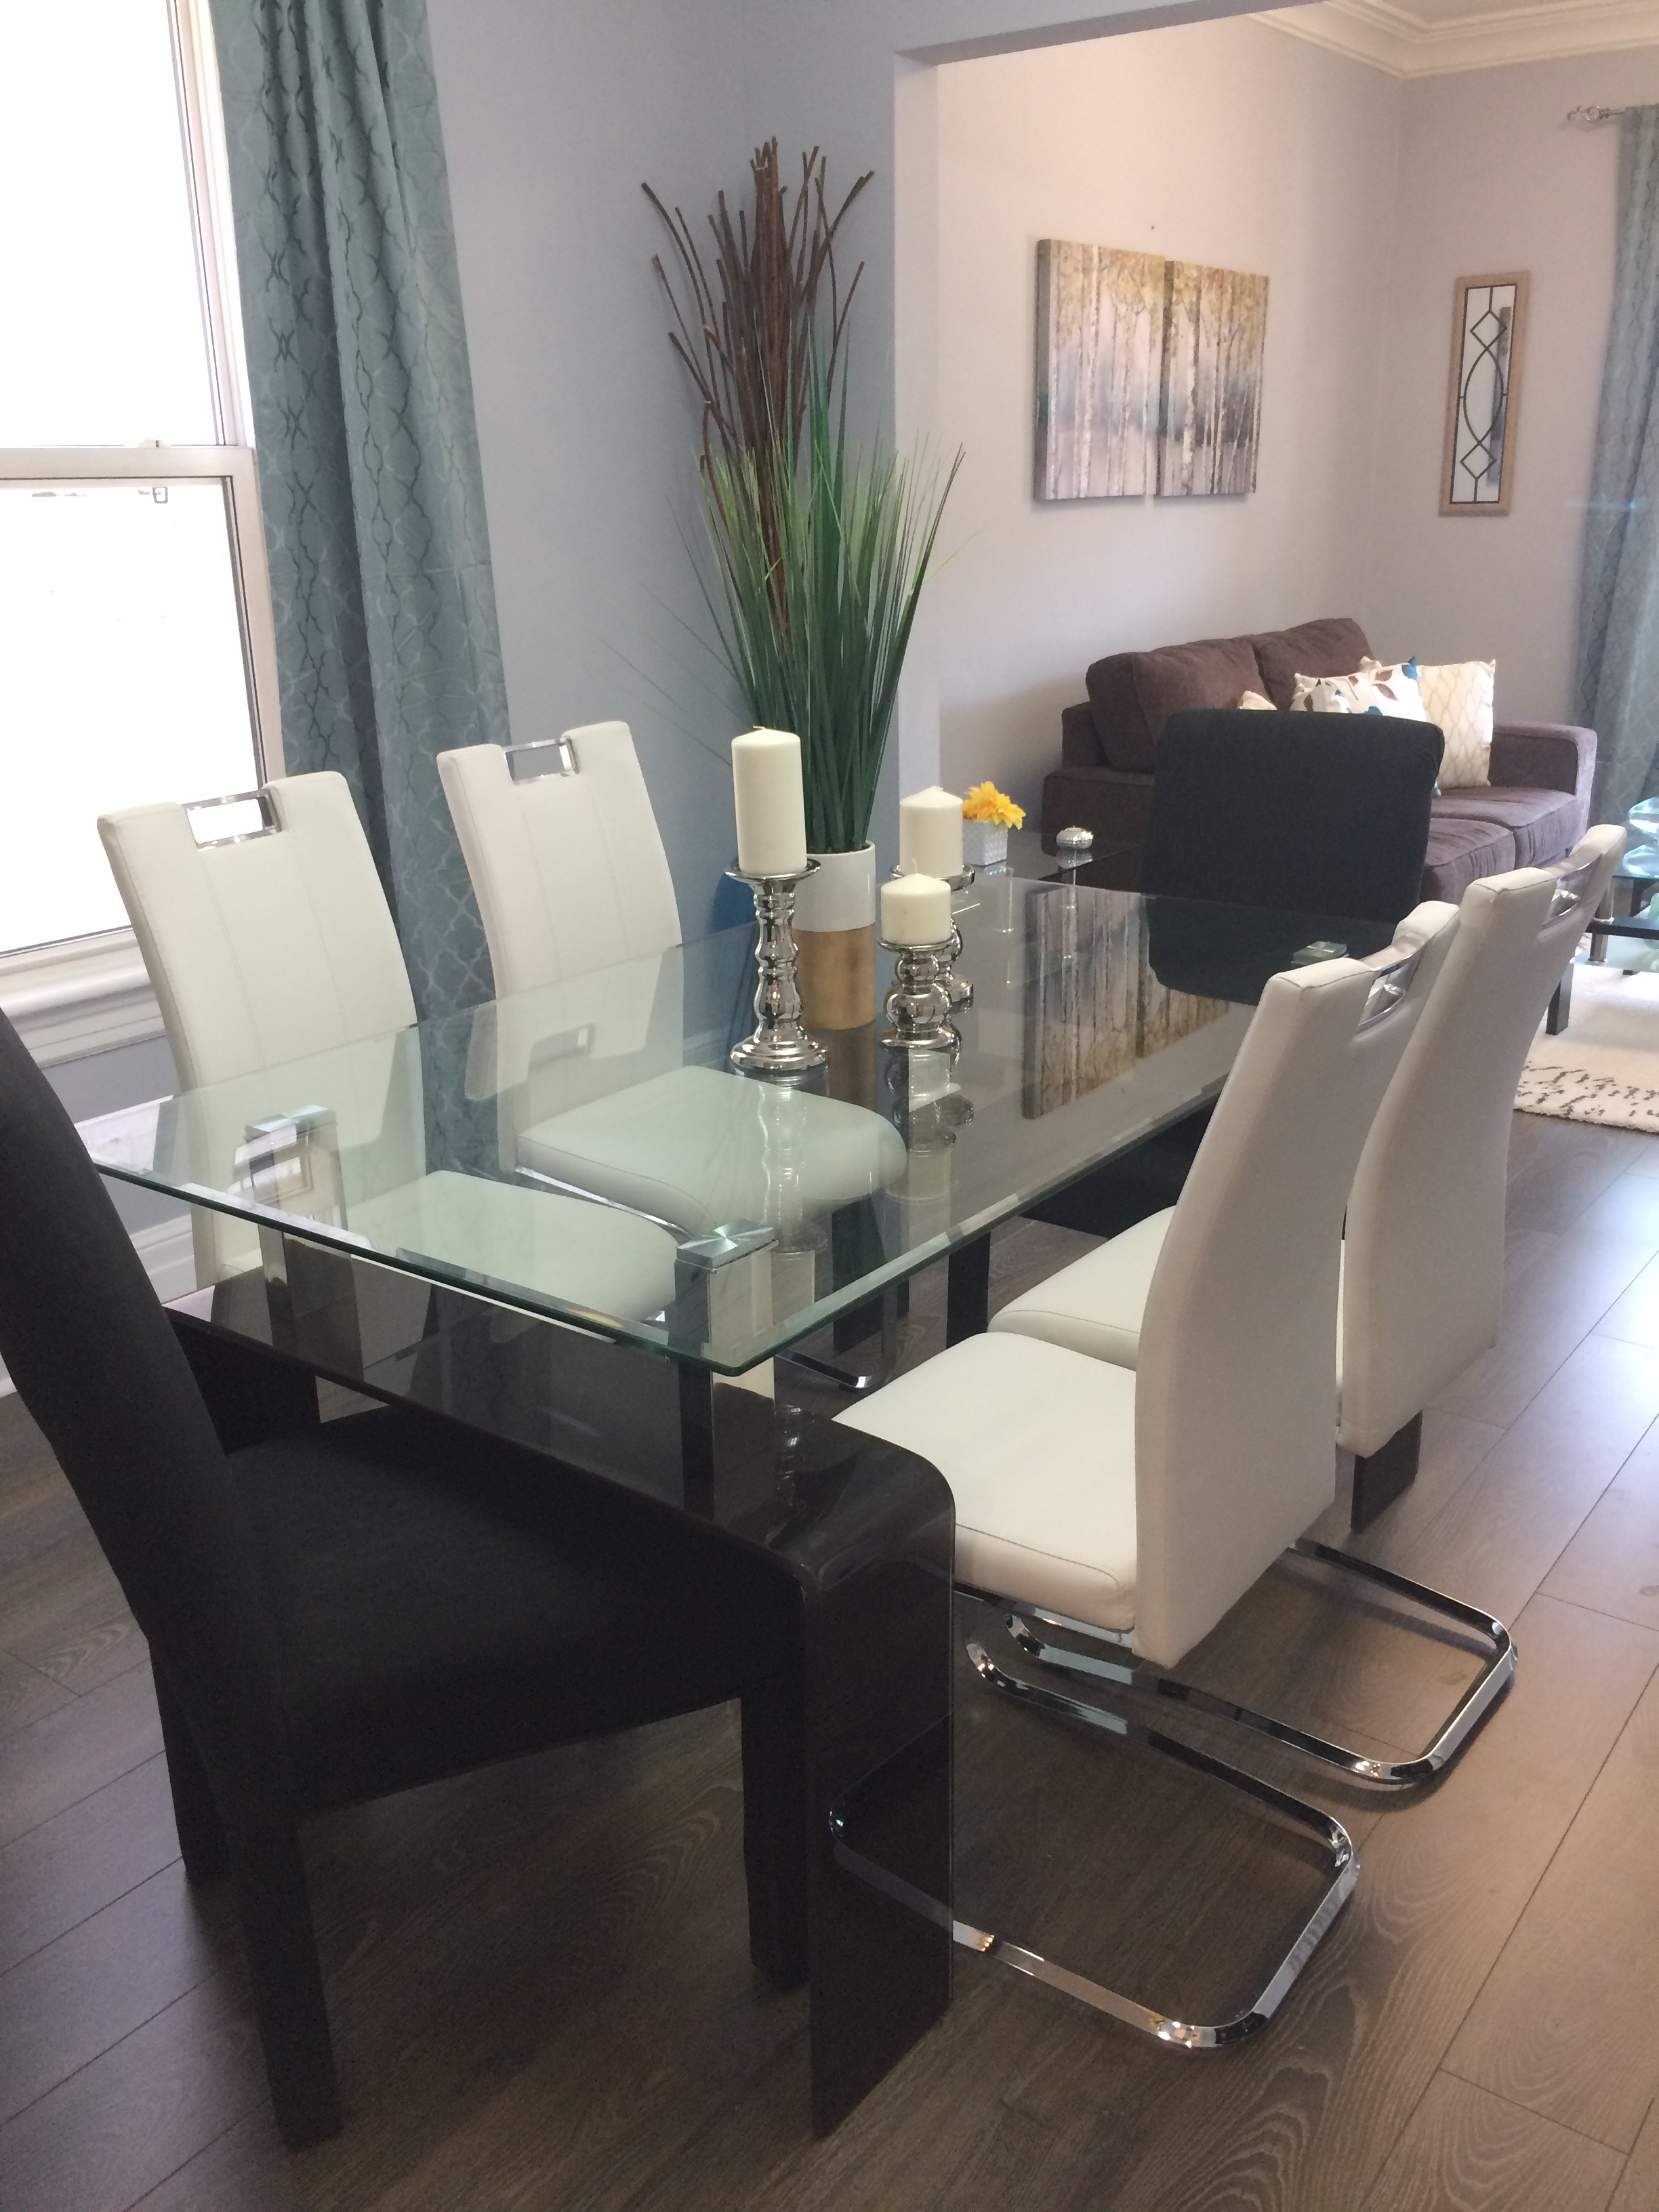 Most Popular Glass Dining Tables With Wooden Legs Throughout Rectangle Glass & Black Glass Leg Dining Table – M&m Home Staging (View 8 of 25)